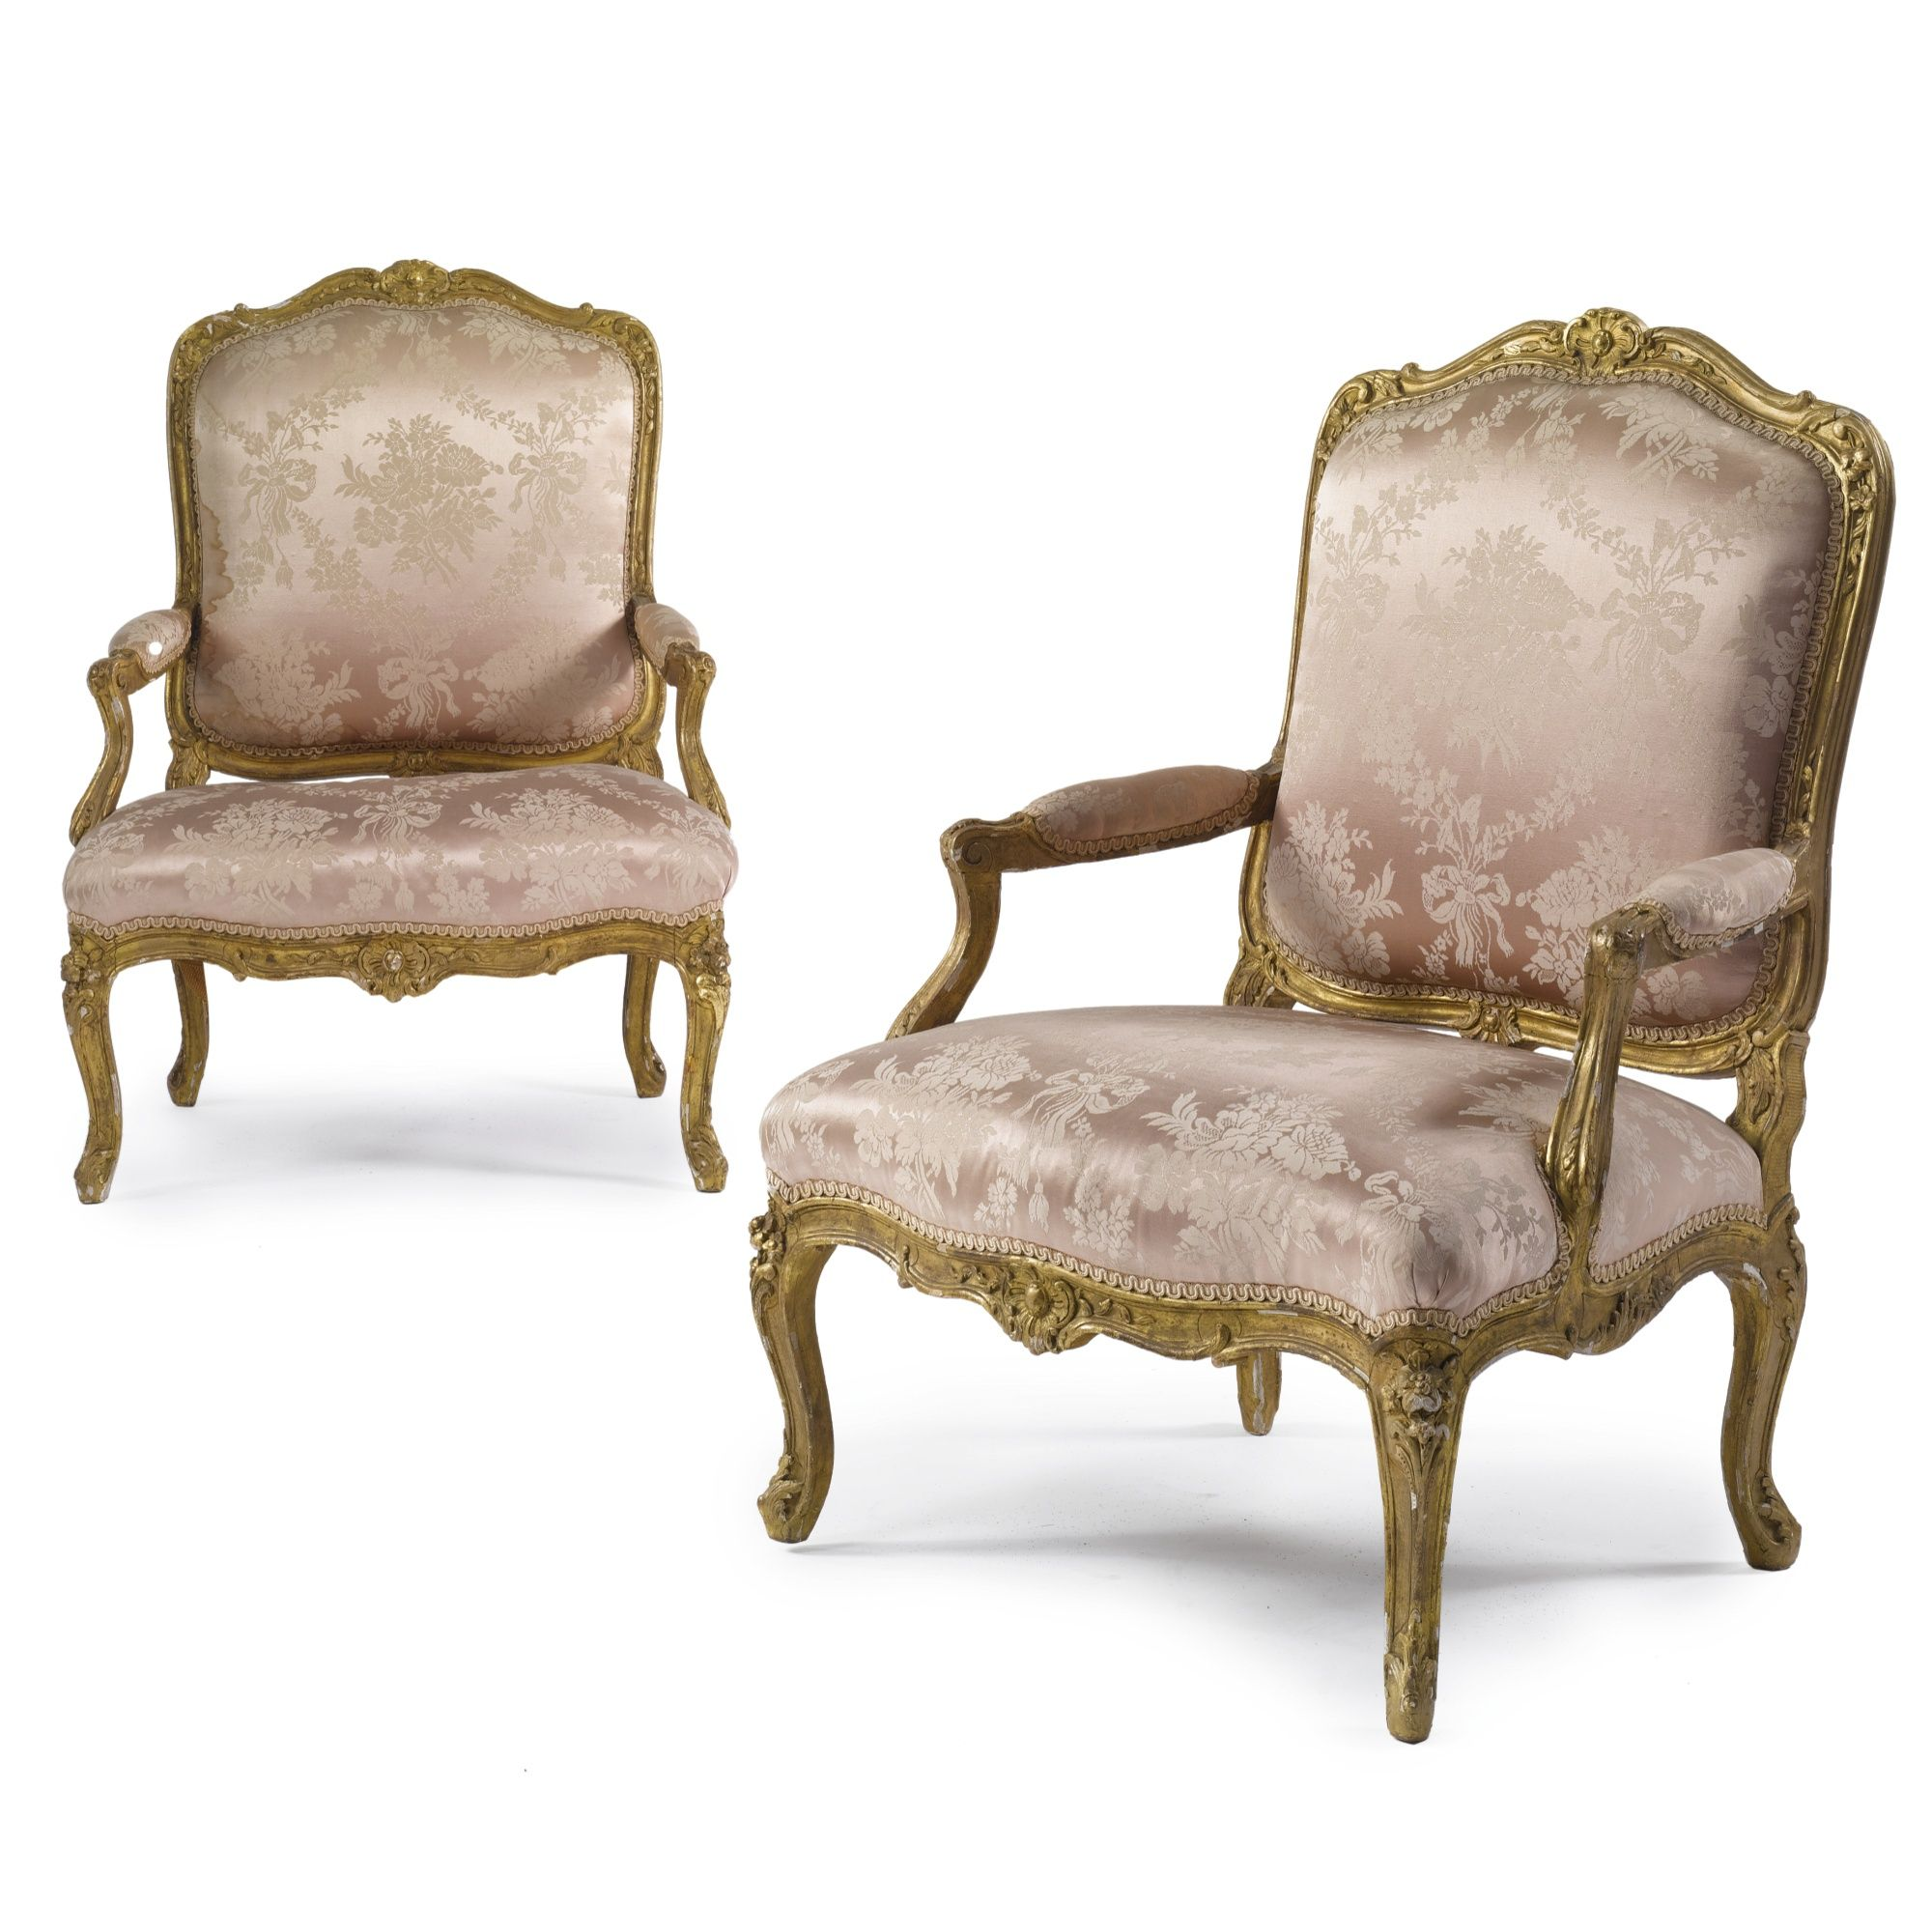 A pair of Louis XV carved giltwood fauteuils à la reine<br>circa 1750 | lot | Sotheby's